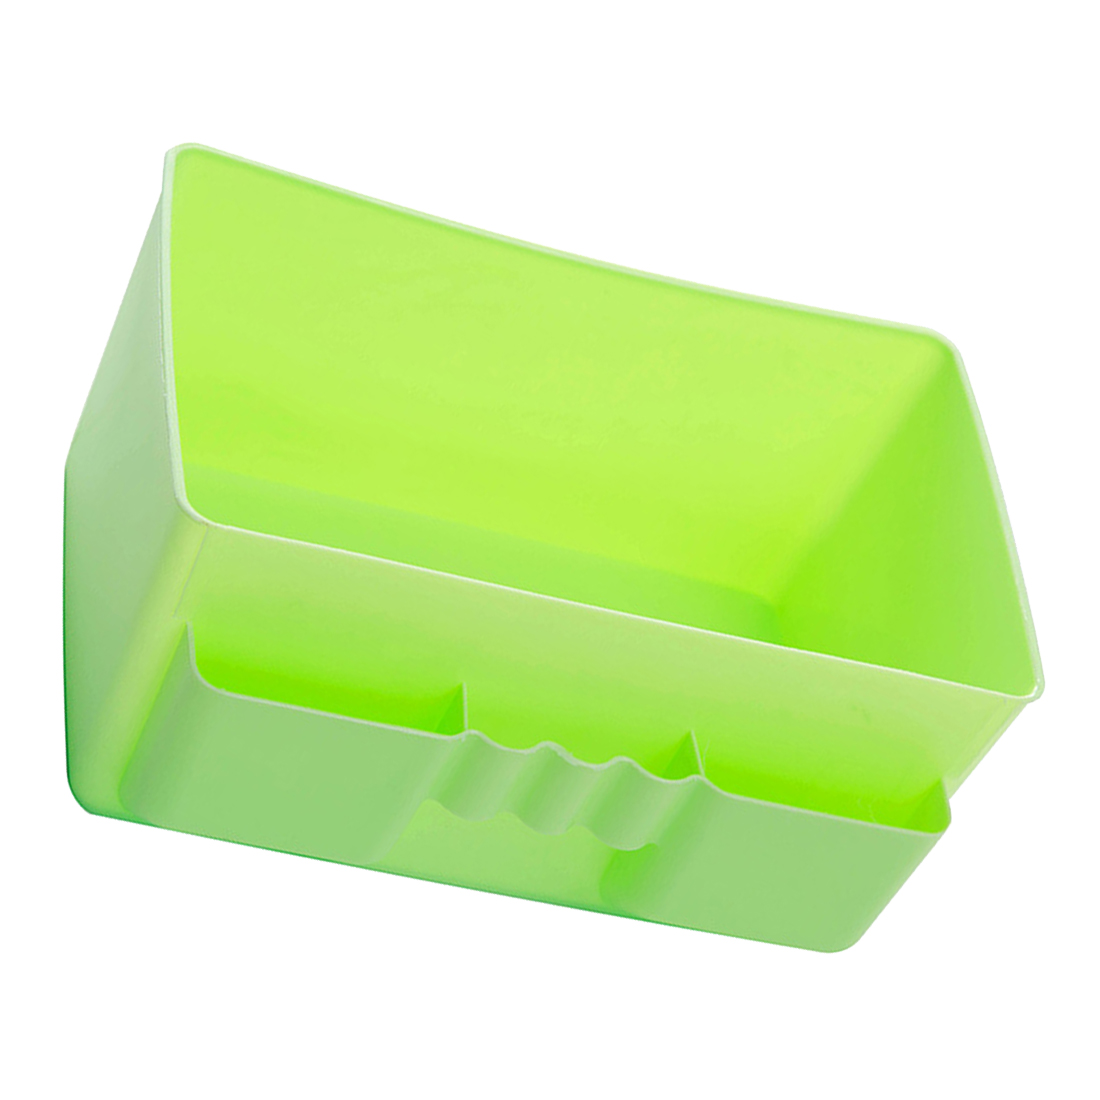 Cute Desktop Organizers Hot Sale Cute Plastic Office Desktop Storage Boxes Makeup